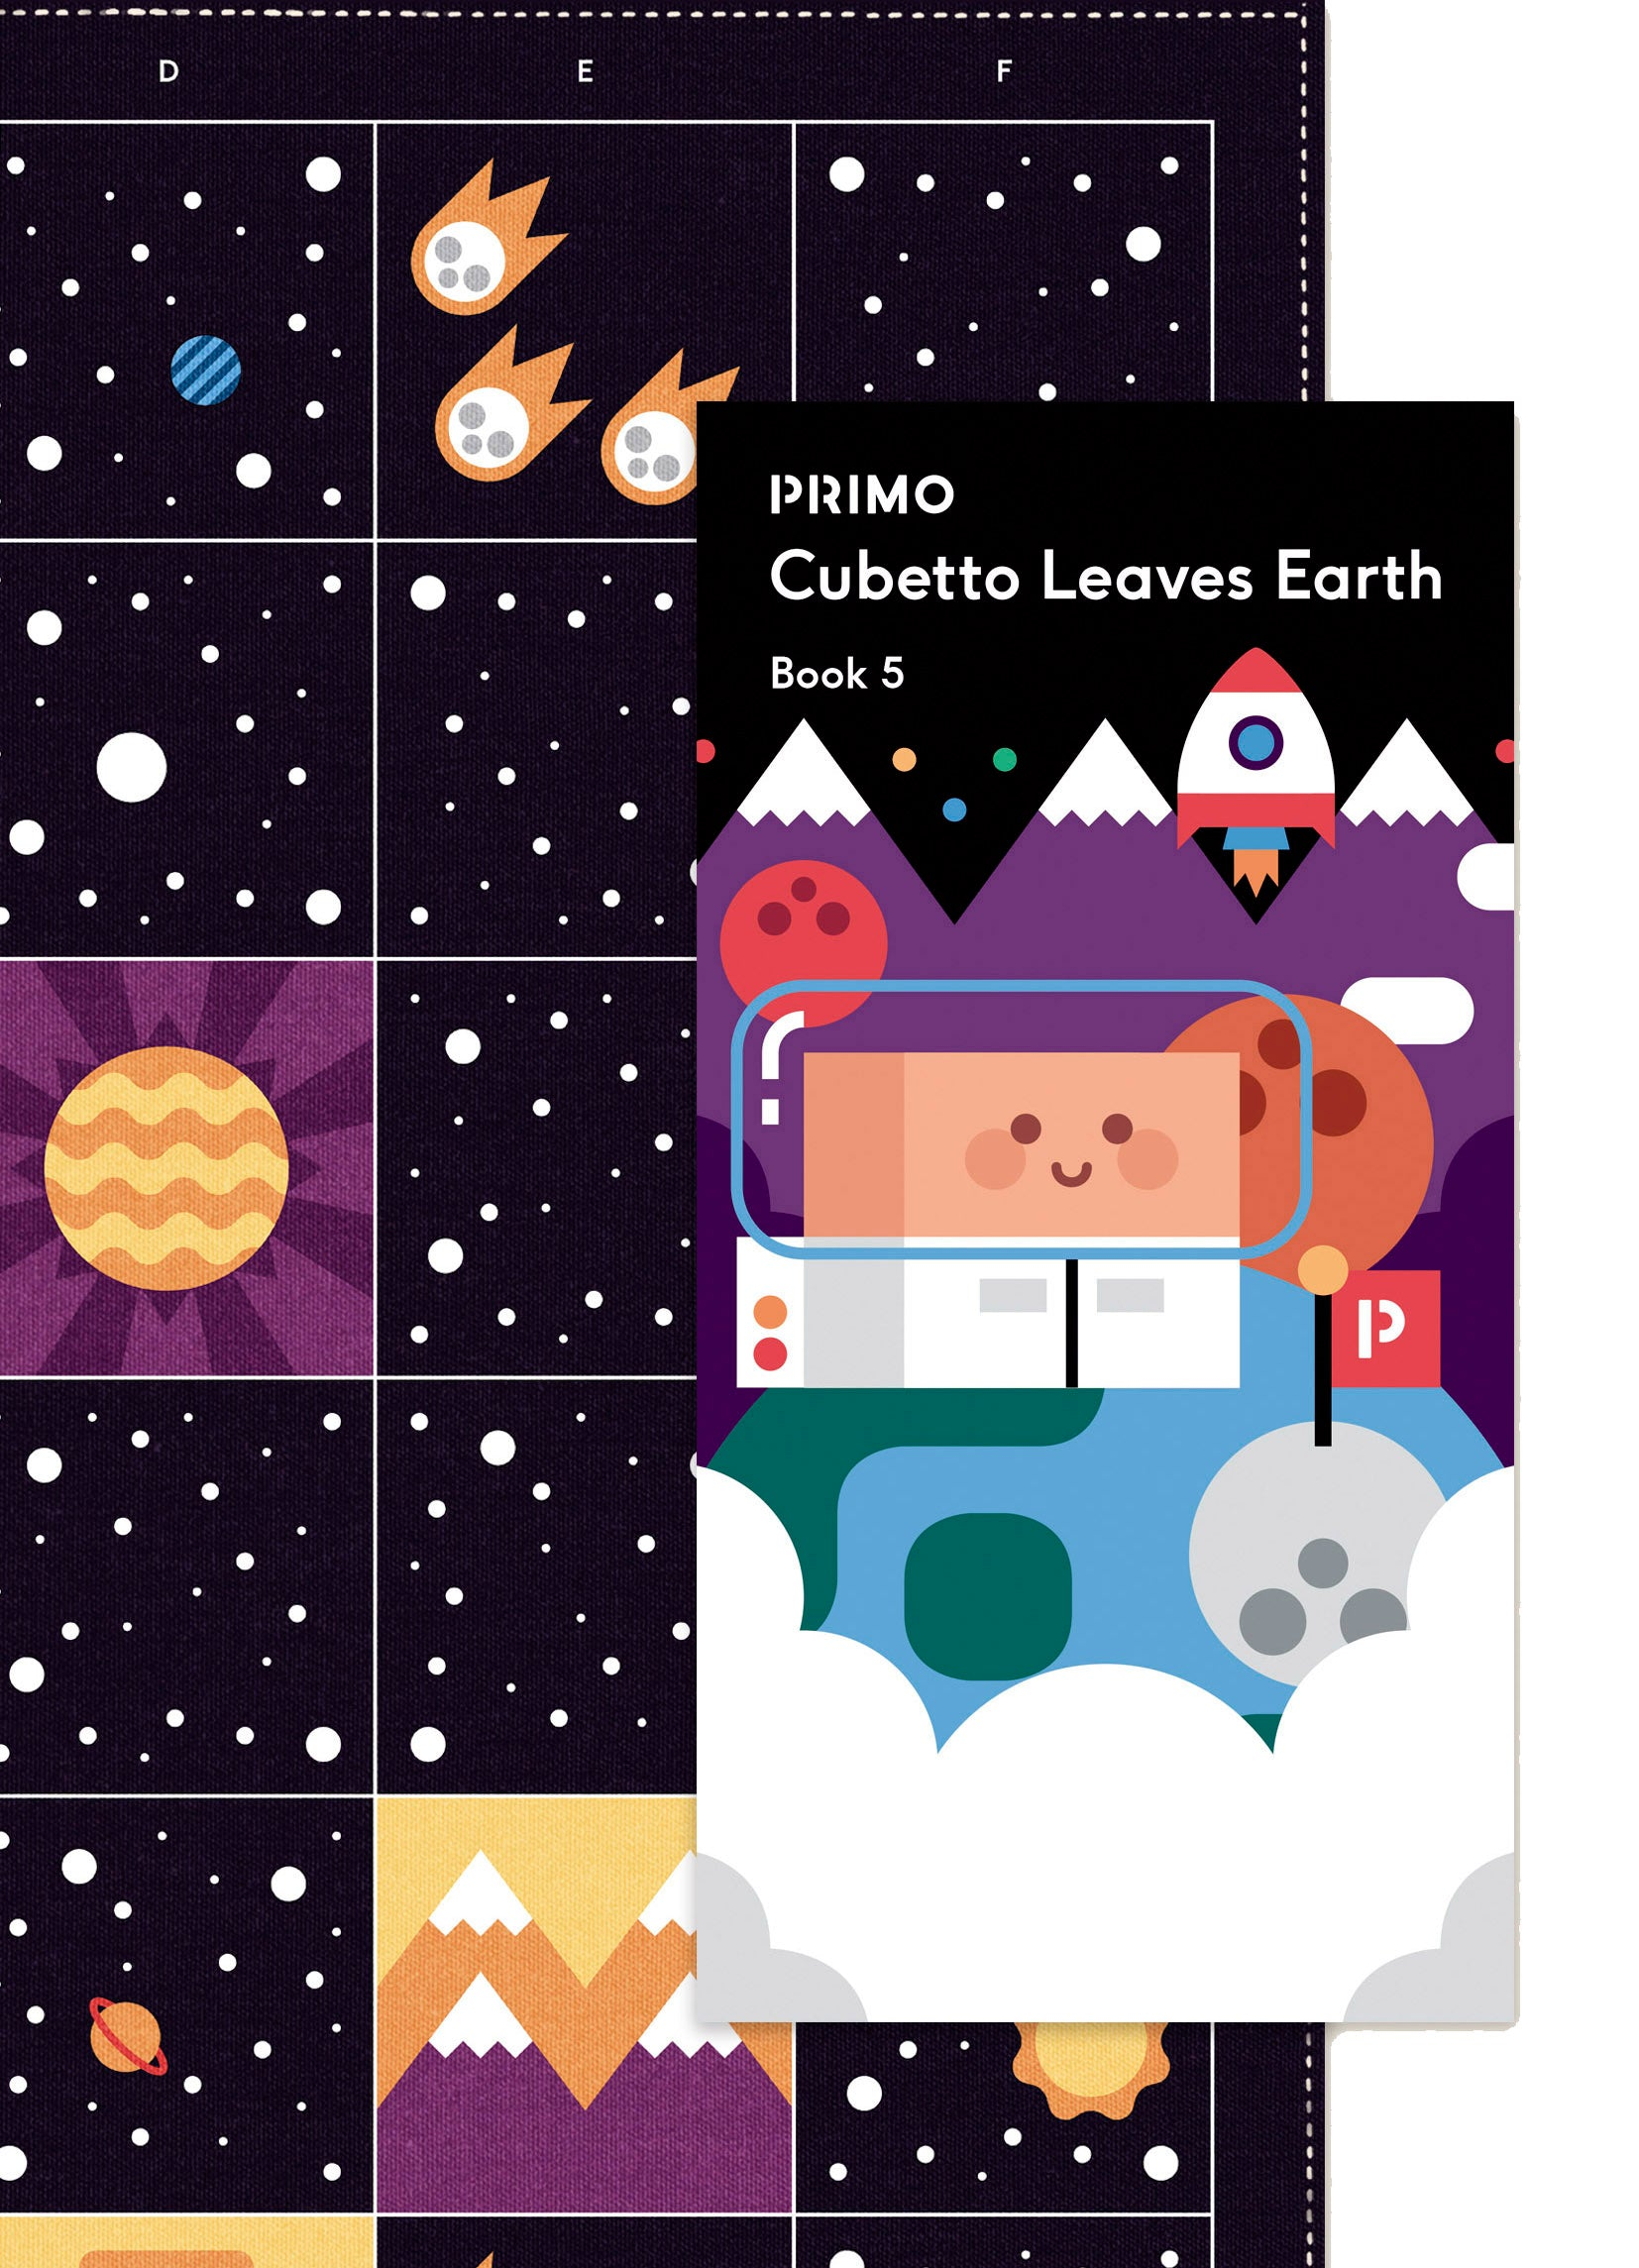 Cubetto Leaves Earth - Space Map and Story Book